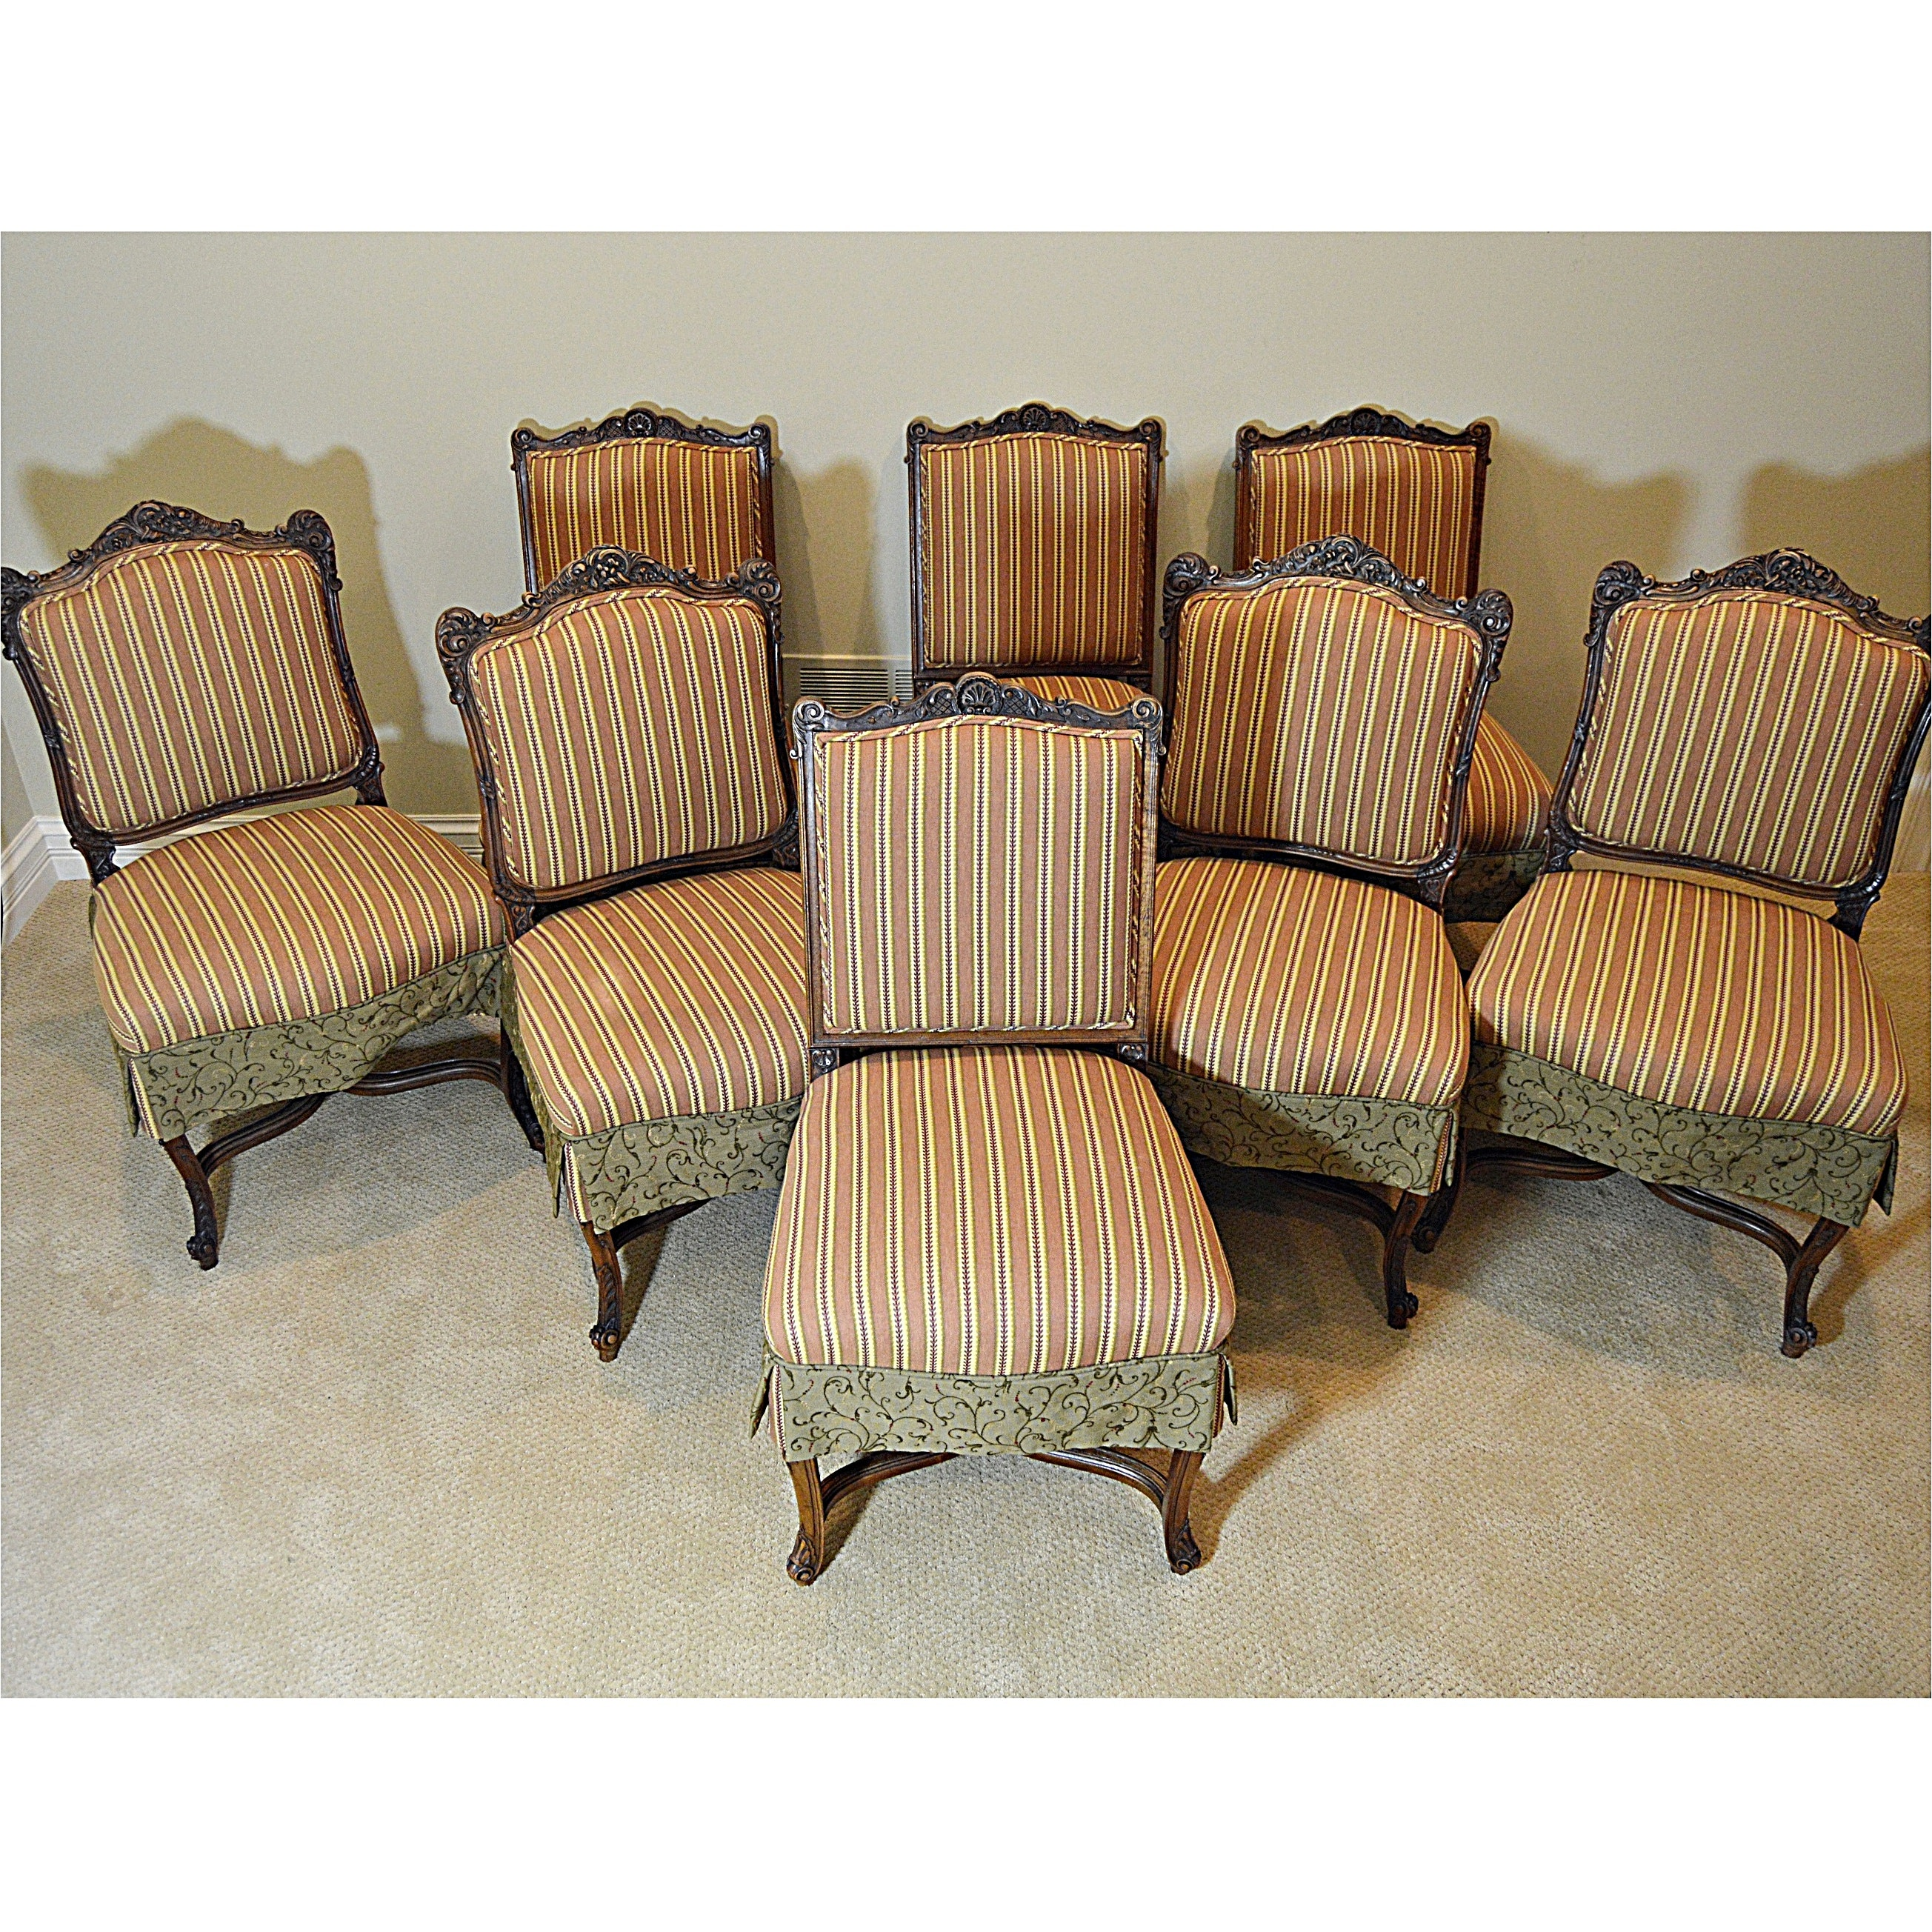 Set of Antique Louis XV Style Chairs